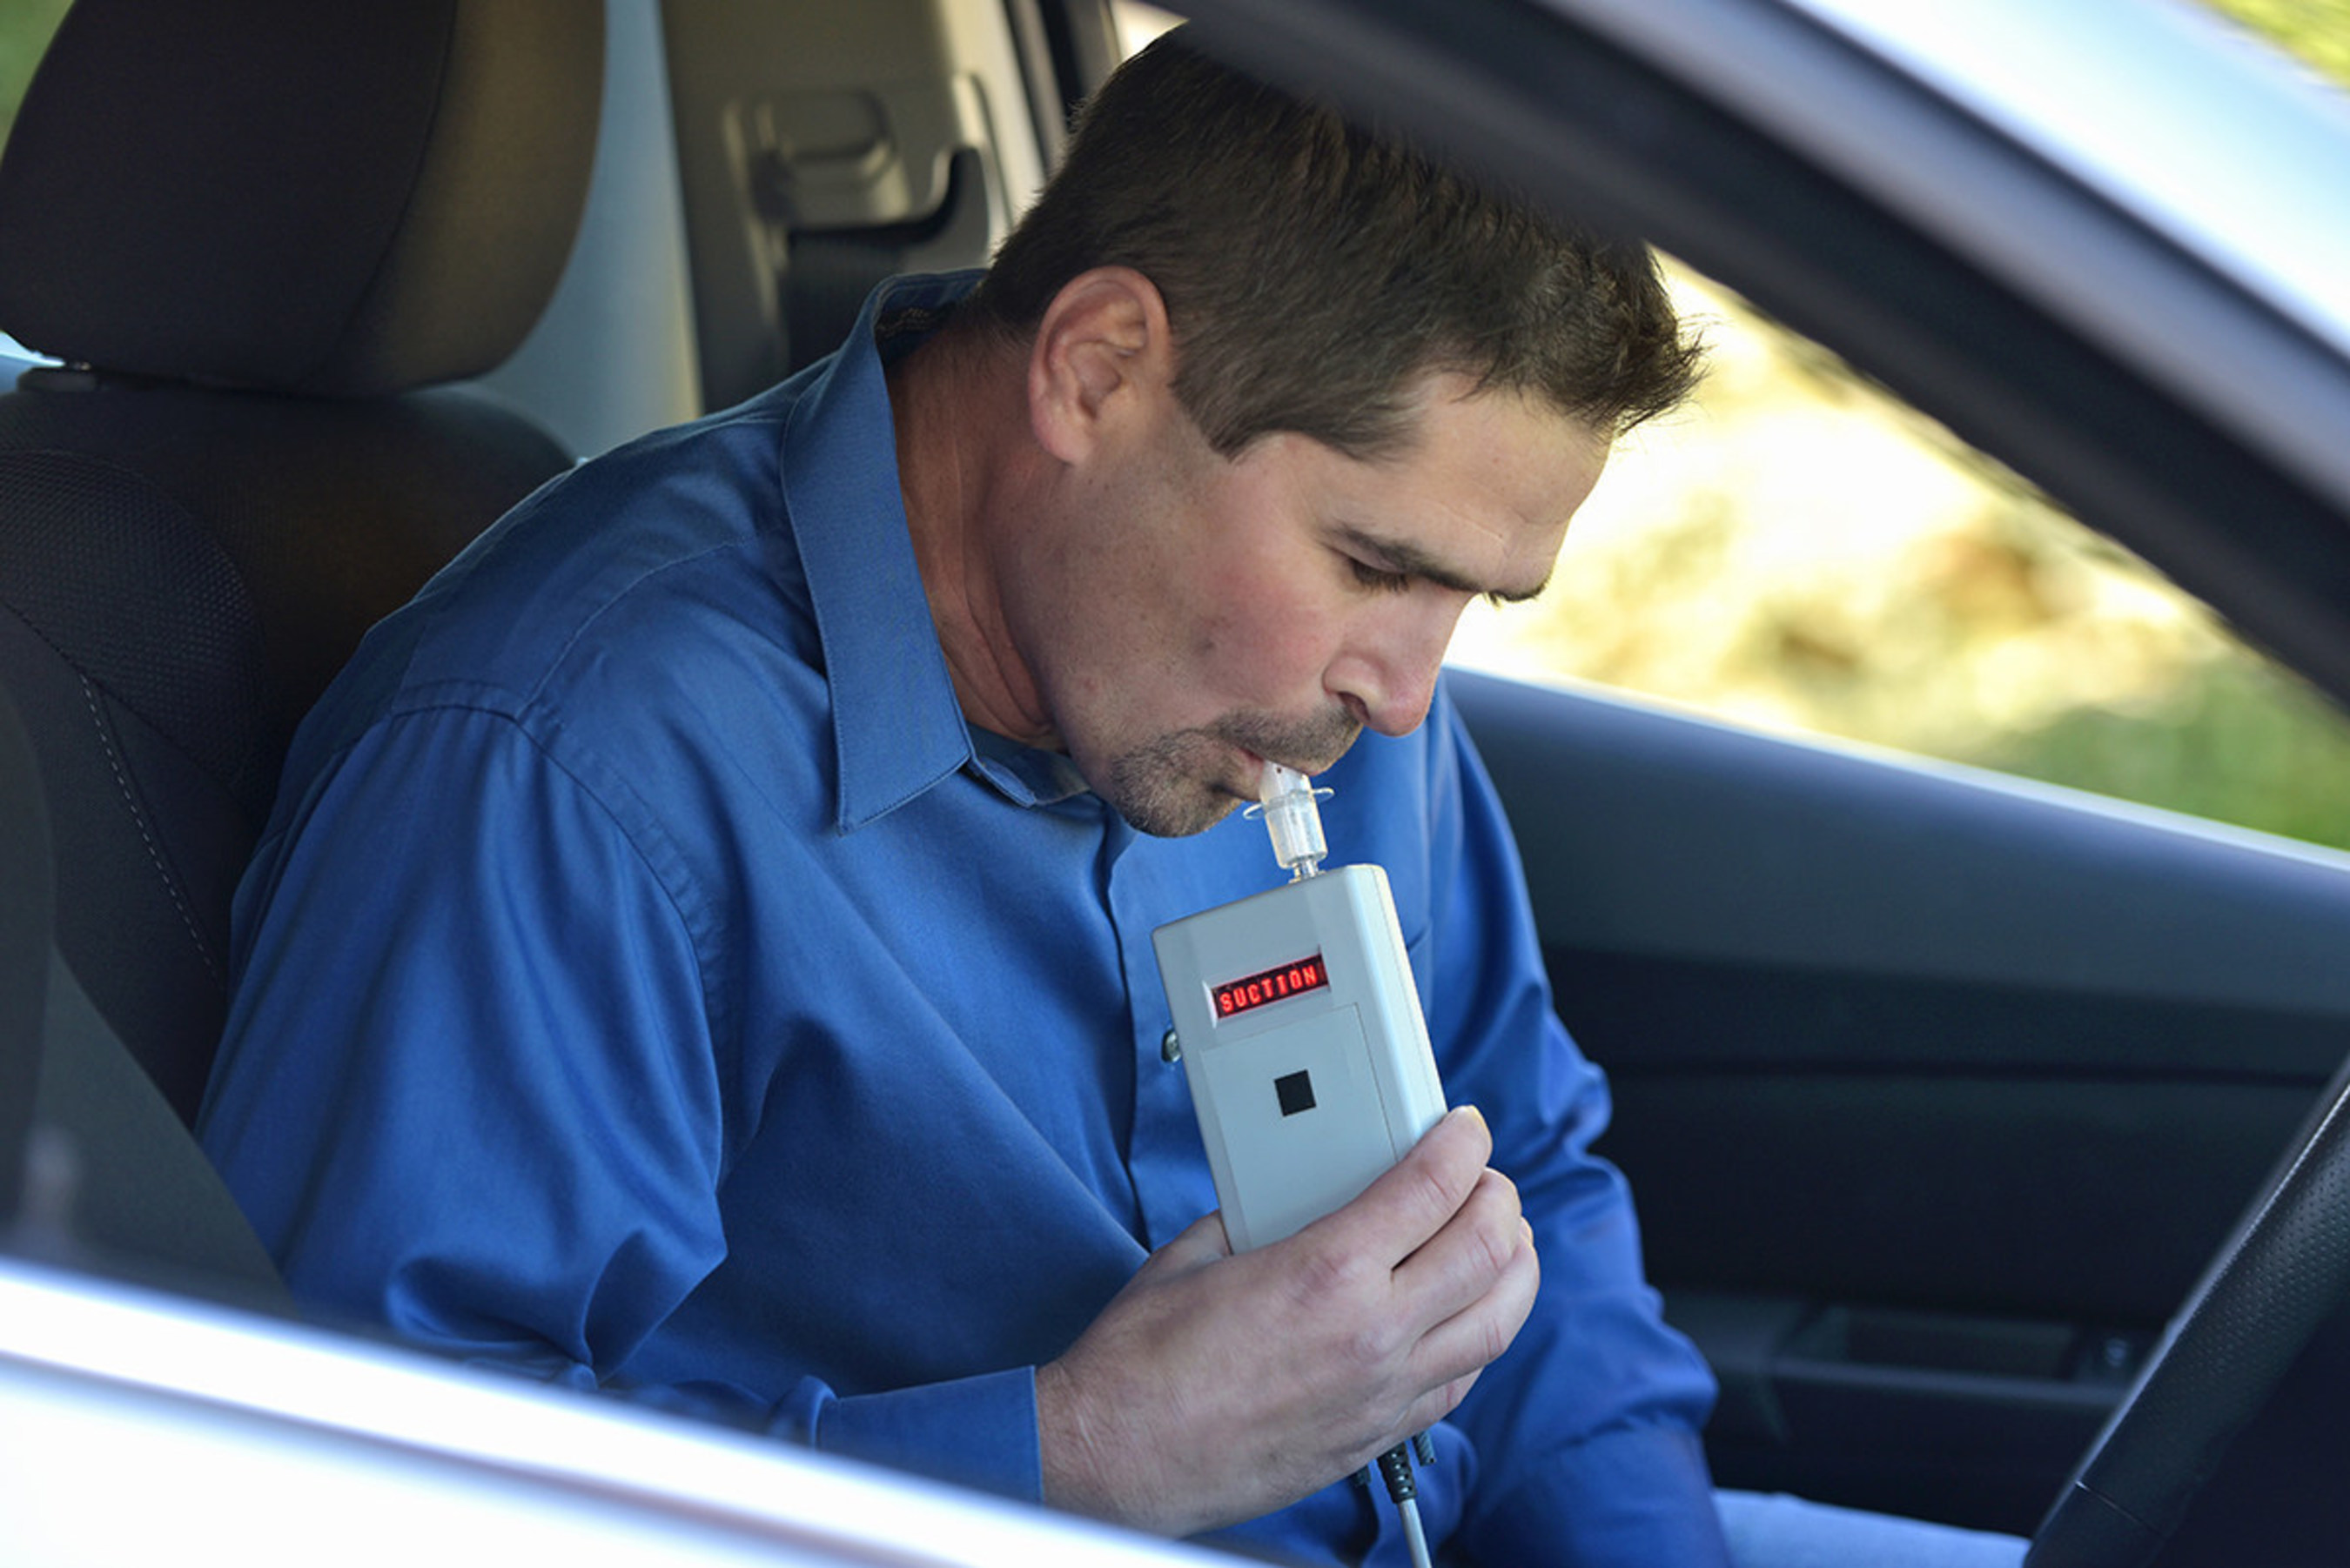 Intoxalock' is Now Certified to Install Ignition Interlock Devices in Florida